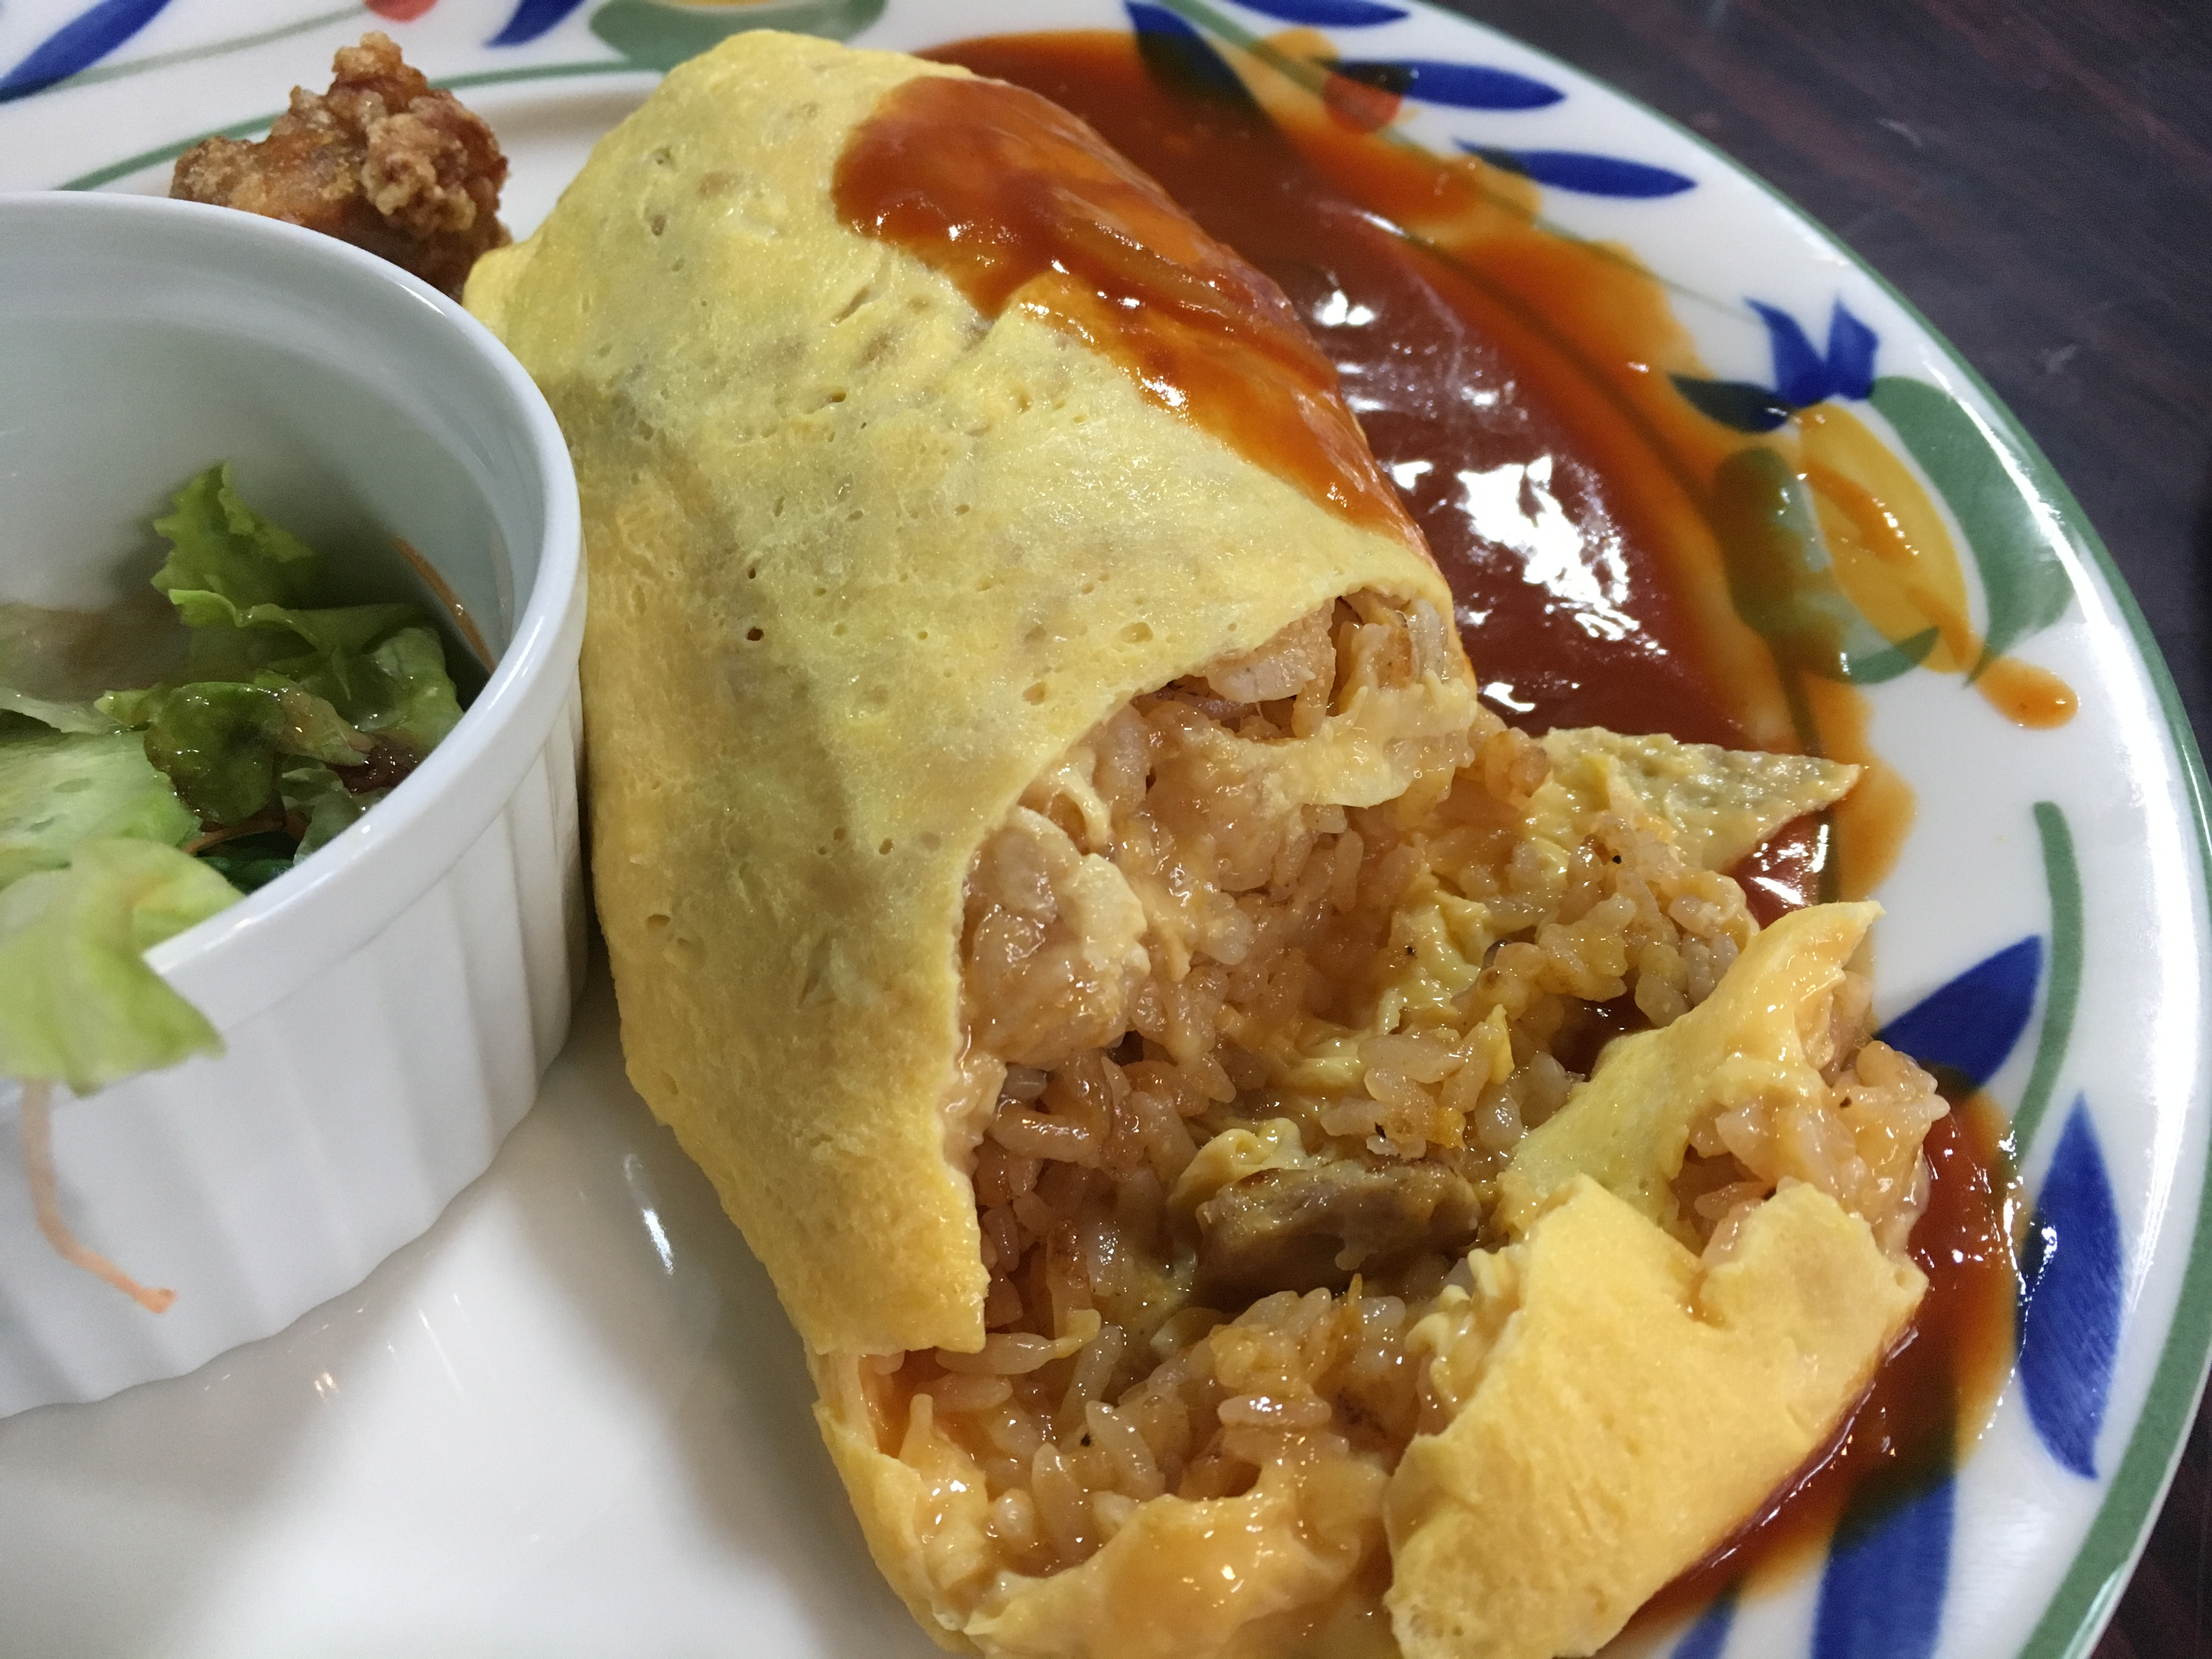 inside of omurice with a side of sauce